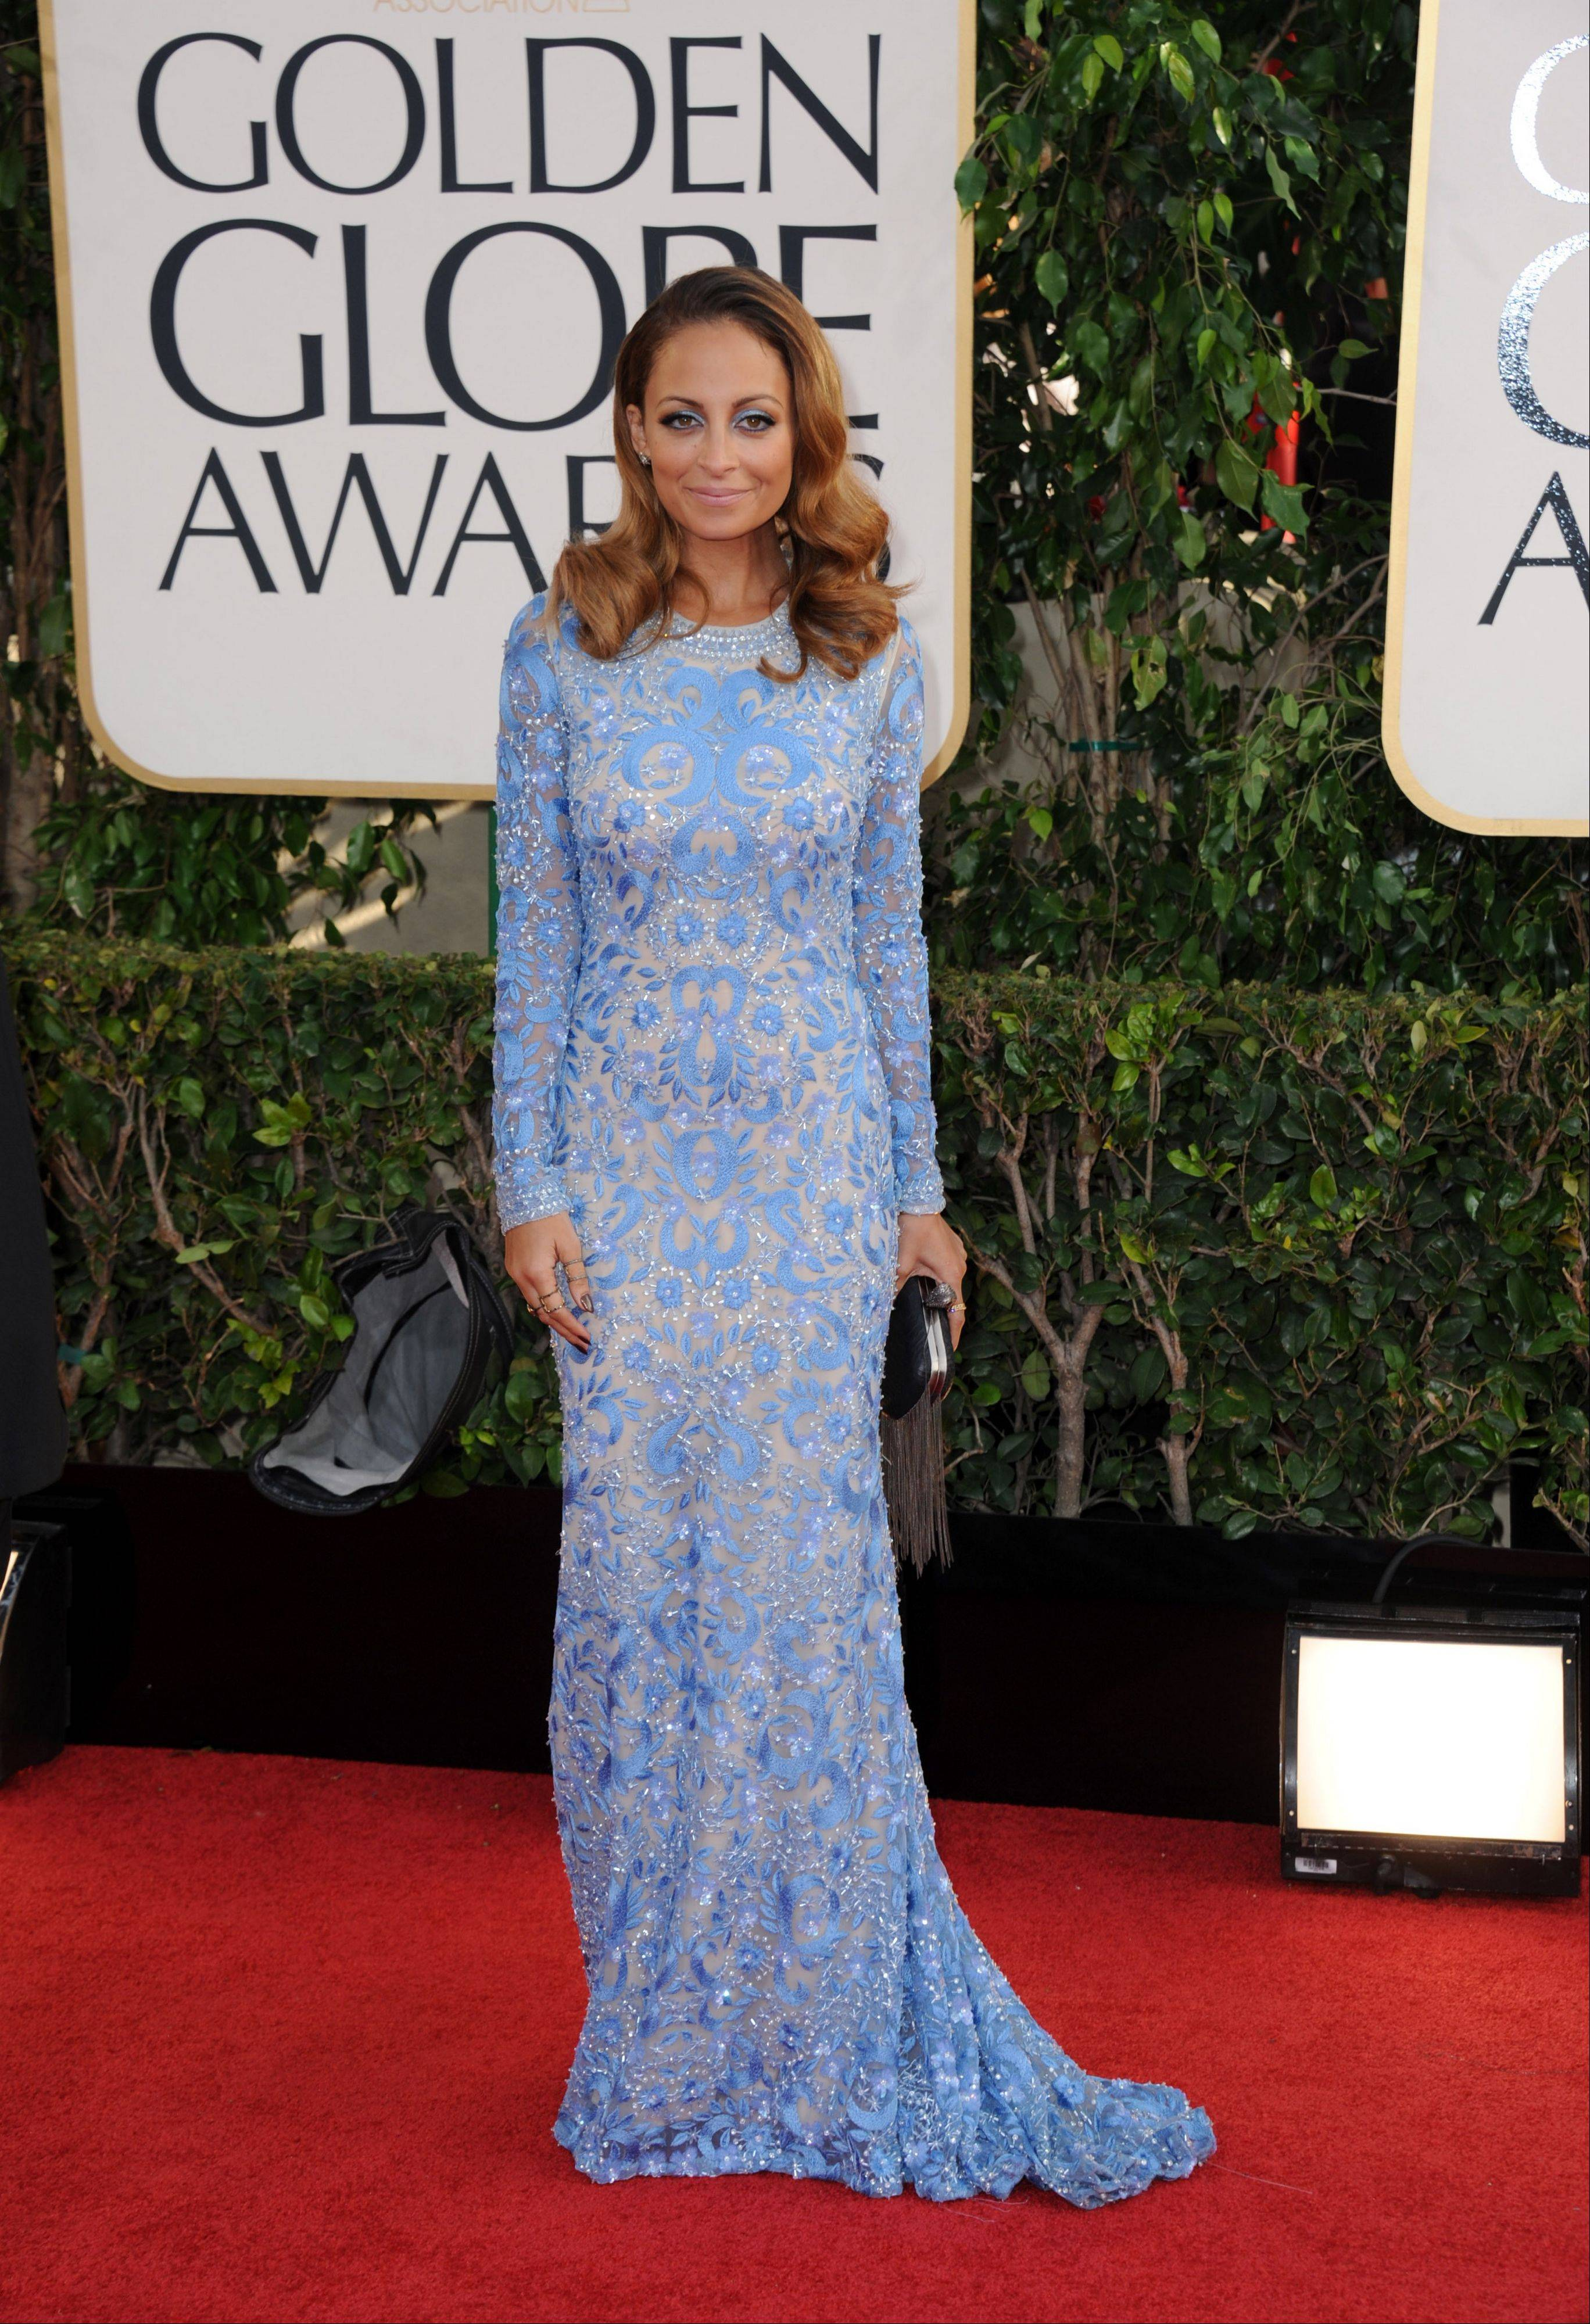 Designer Nicole Richie arrives at the 70th Annual Golden Globe Awards at the Beverly Hilton Hotel on Sunday Jan. 13, 2013, in Beverly Hills, Calif.